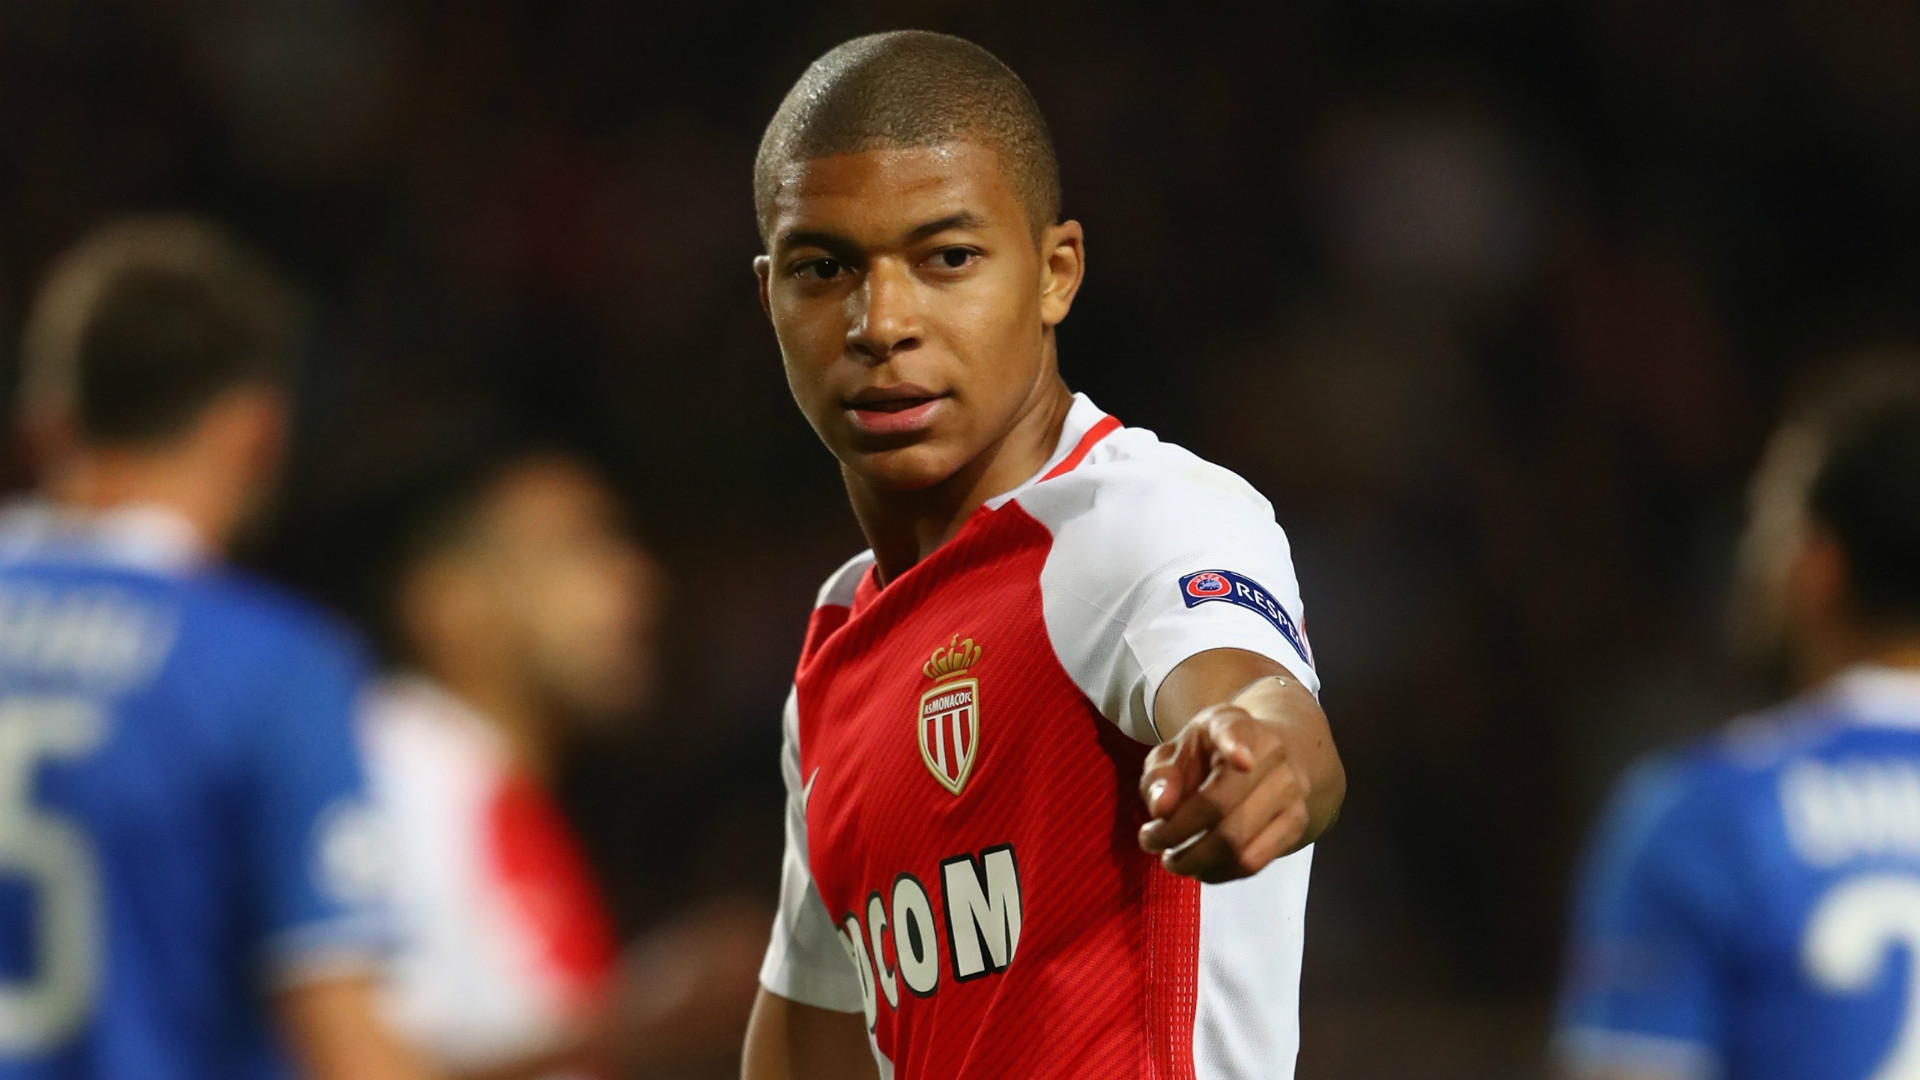 Prince Albert II doubts Mbappe will leave Monaco amid Madrid interest